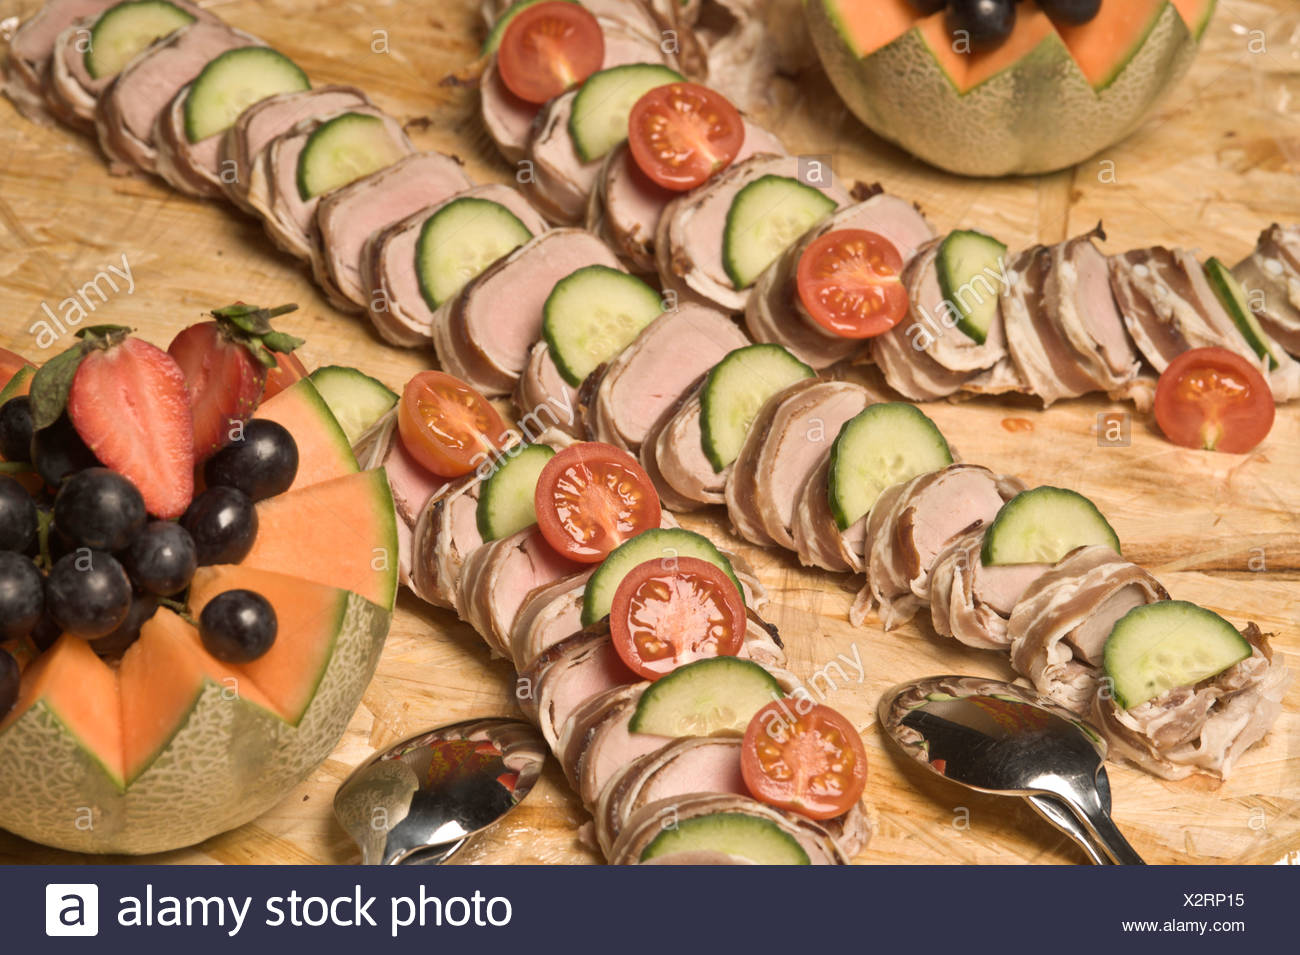 Cold cuts with pork medaillons, buffet, food Stock Photo